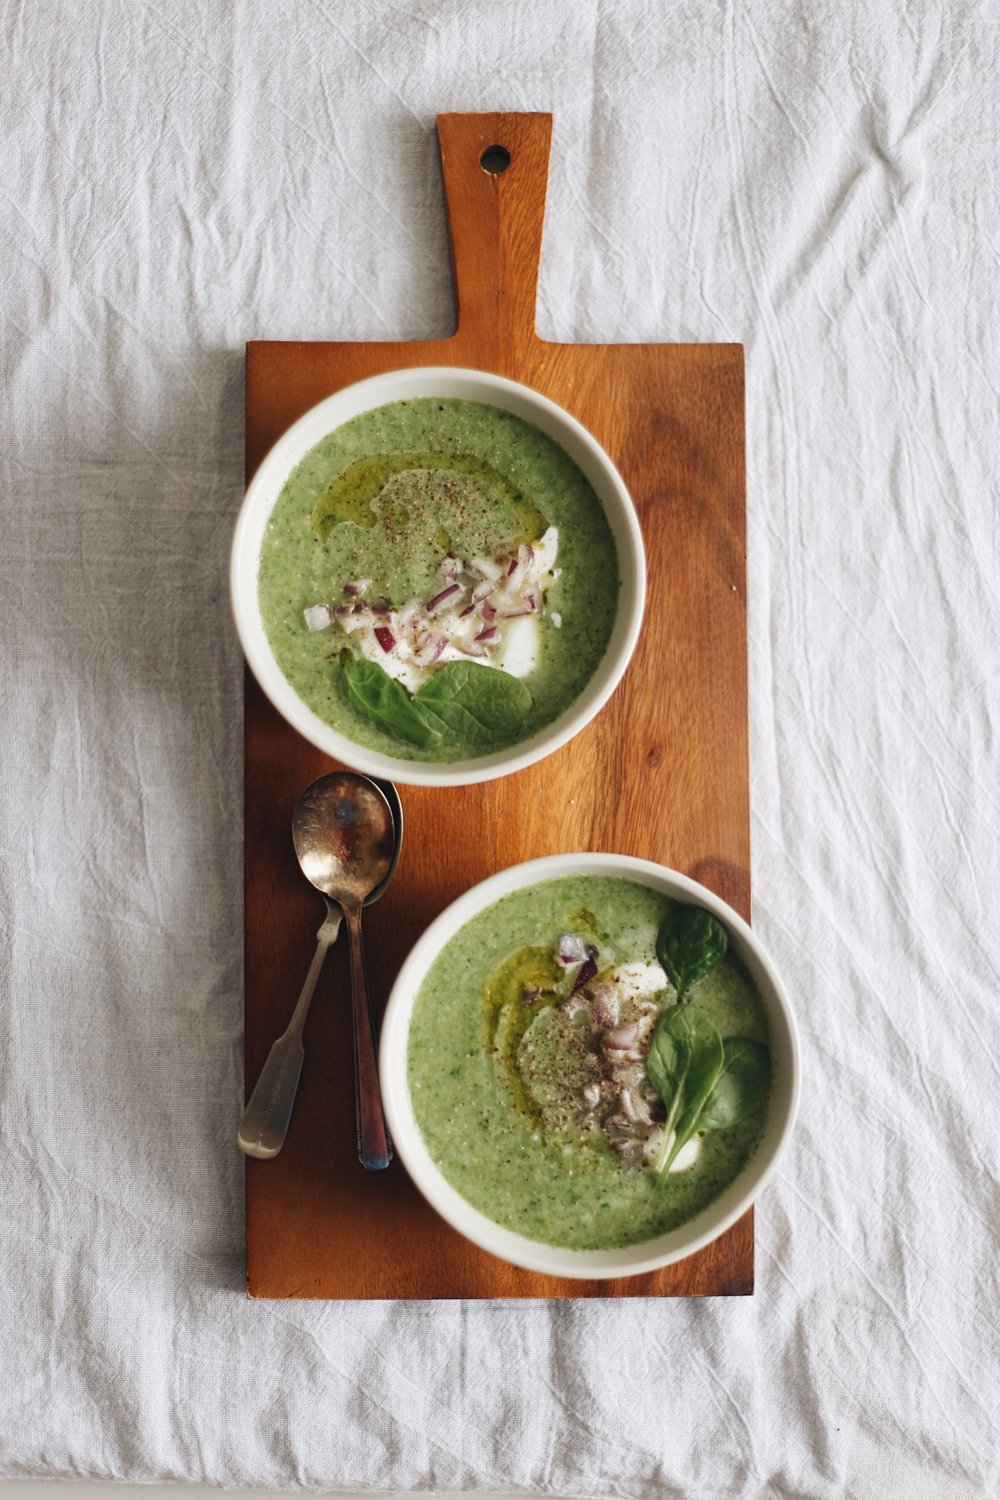 broccolispinach_miso_soup_2.JPG